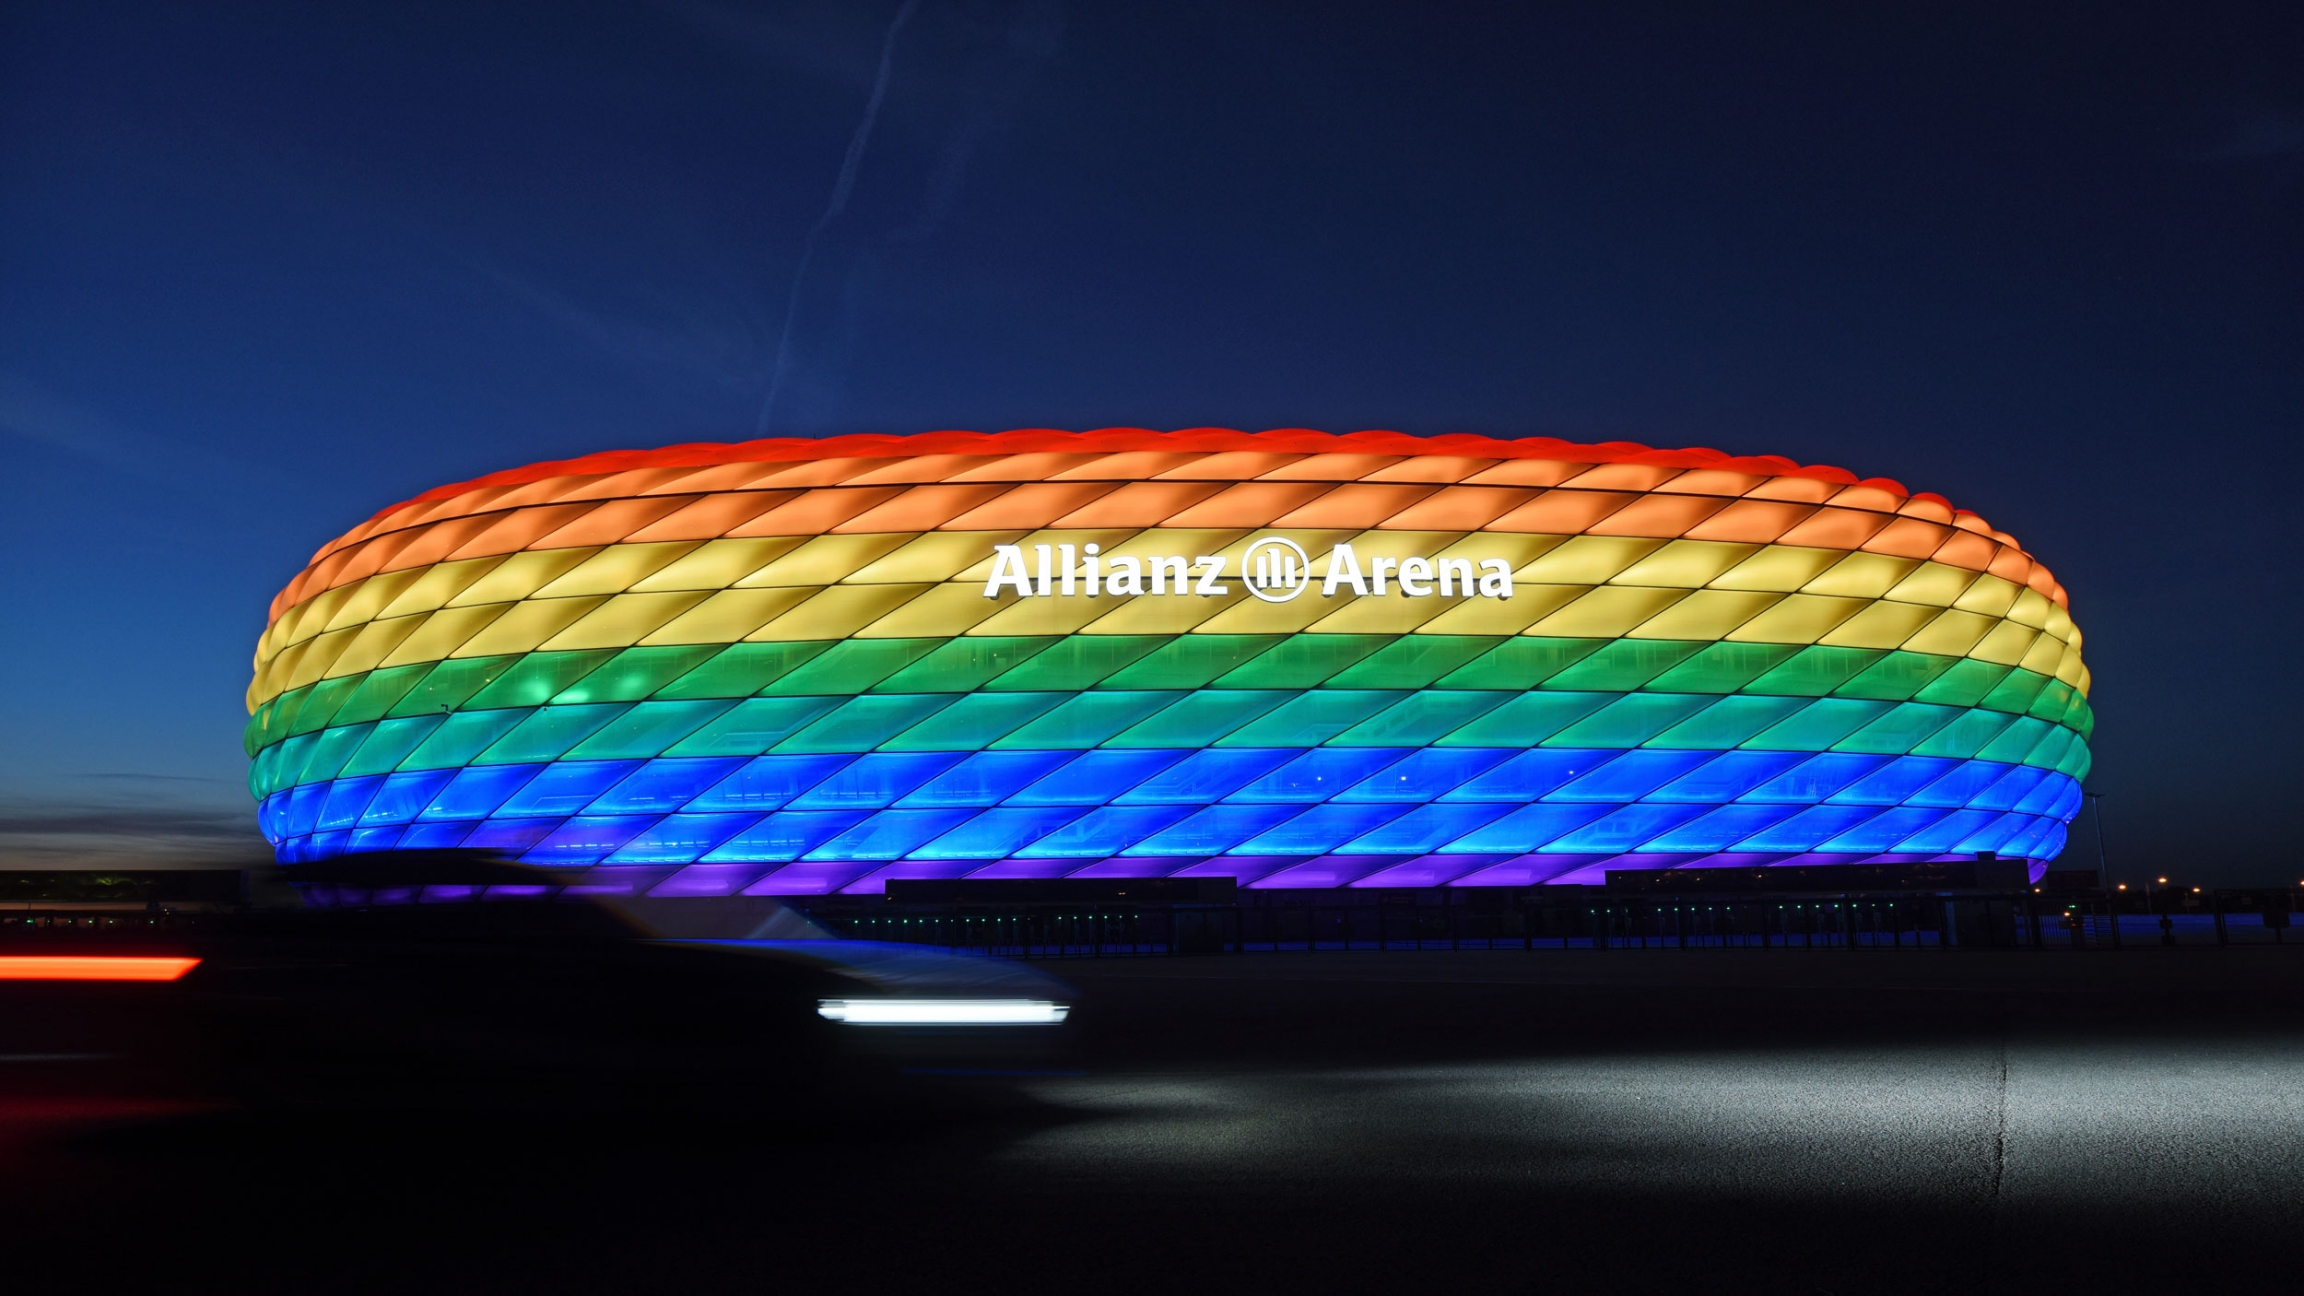 The Allianz Arean in Munich is shown illuminated in the colors of the rainbow with the night sky in the background.